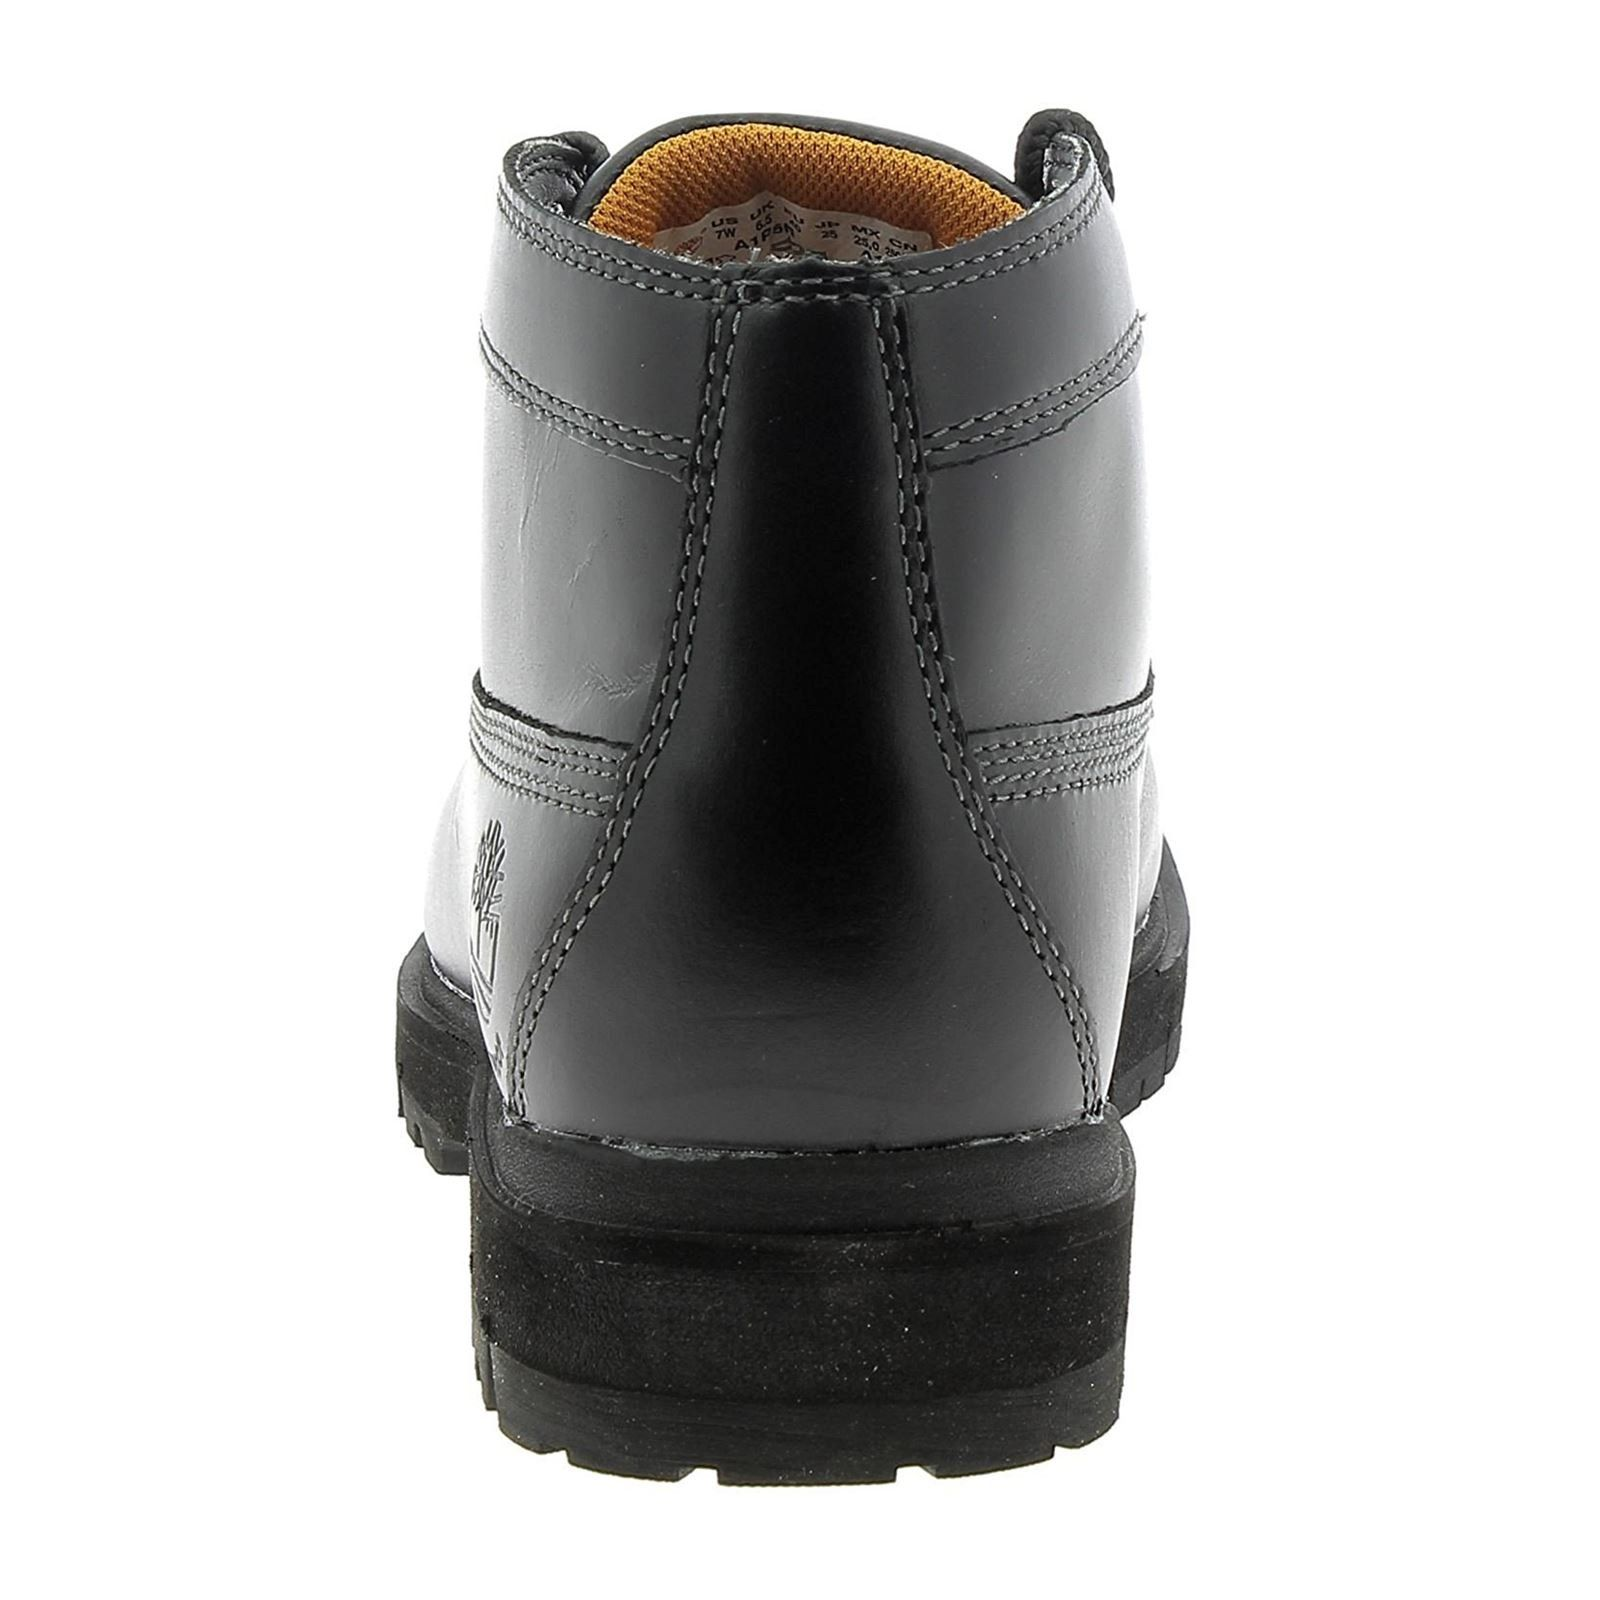 8174fa37ccf4 Timberland Mens Radford Chukka Waterproof Black Leather Boots 9.5 US      Want to know more